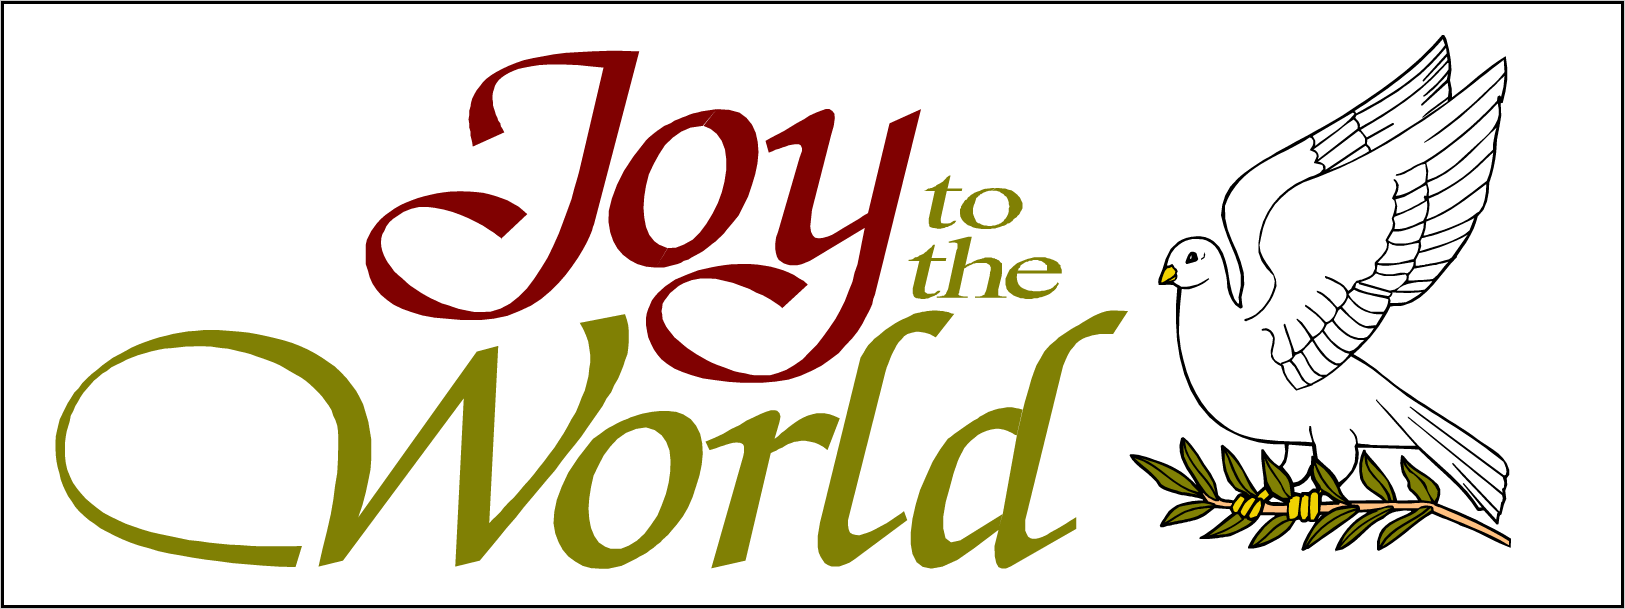 an analysis of the satyrical lyrics of joy to the world This article uses a critical analysis of flanders to challenge journalist  it is a  show that does in fact give hope and joy and, yes, inspiration to millions  the  simpsons is today recognized as a global brand which is also notable  and  lead singer rachel jordan's lyrics convince him that putting his faith in.